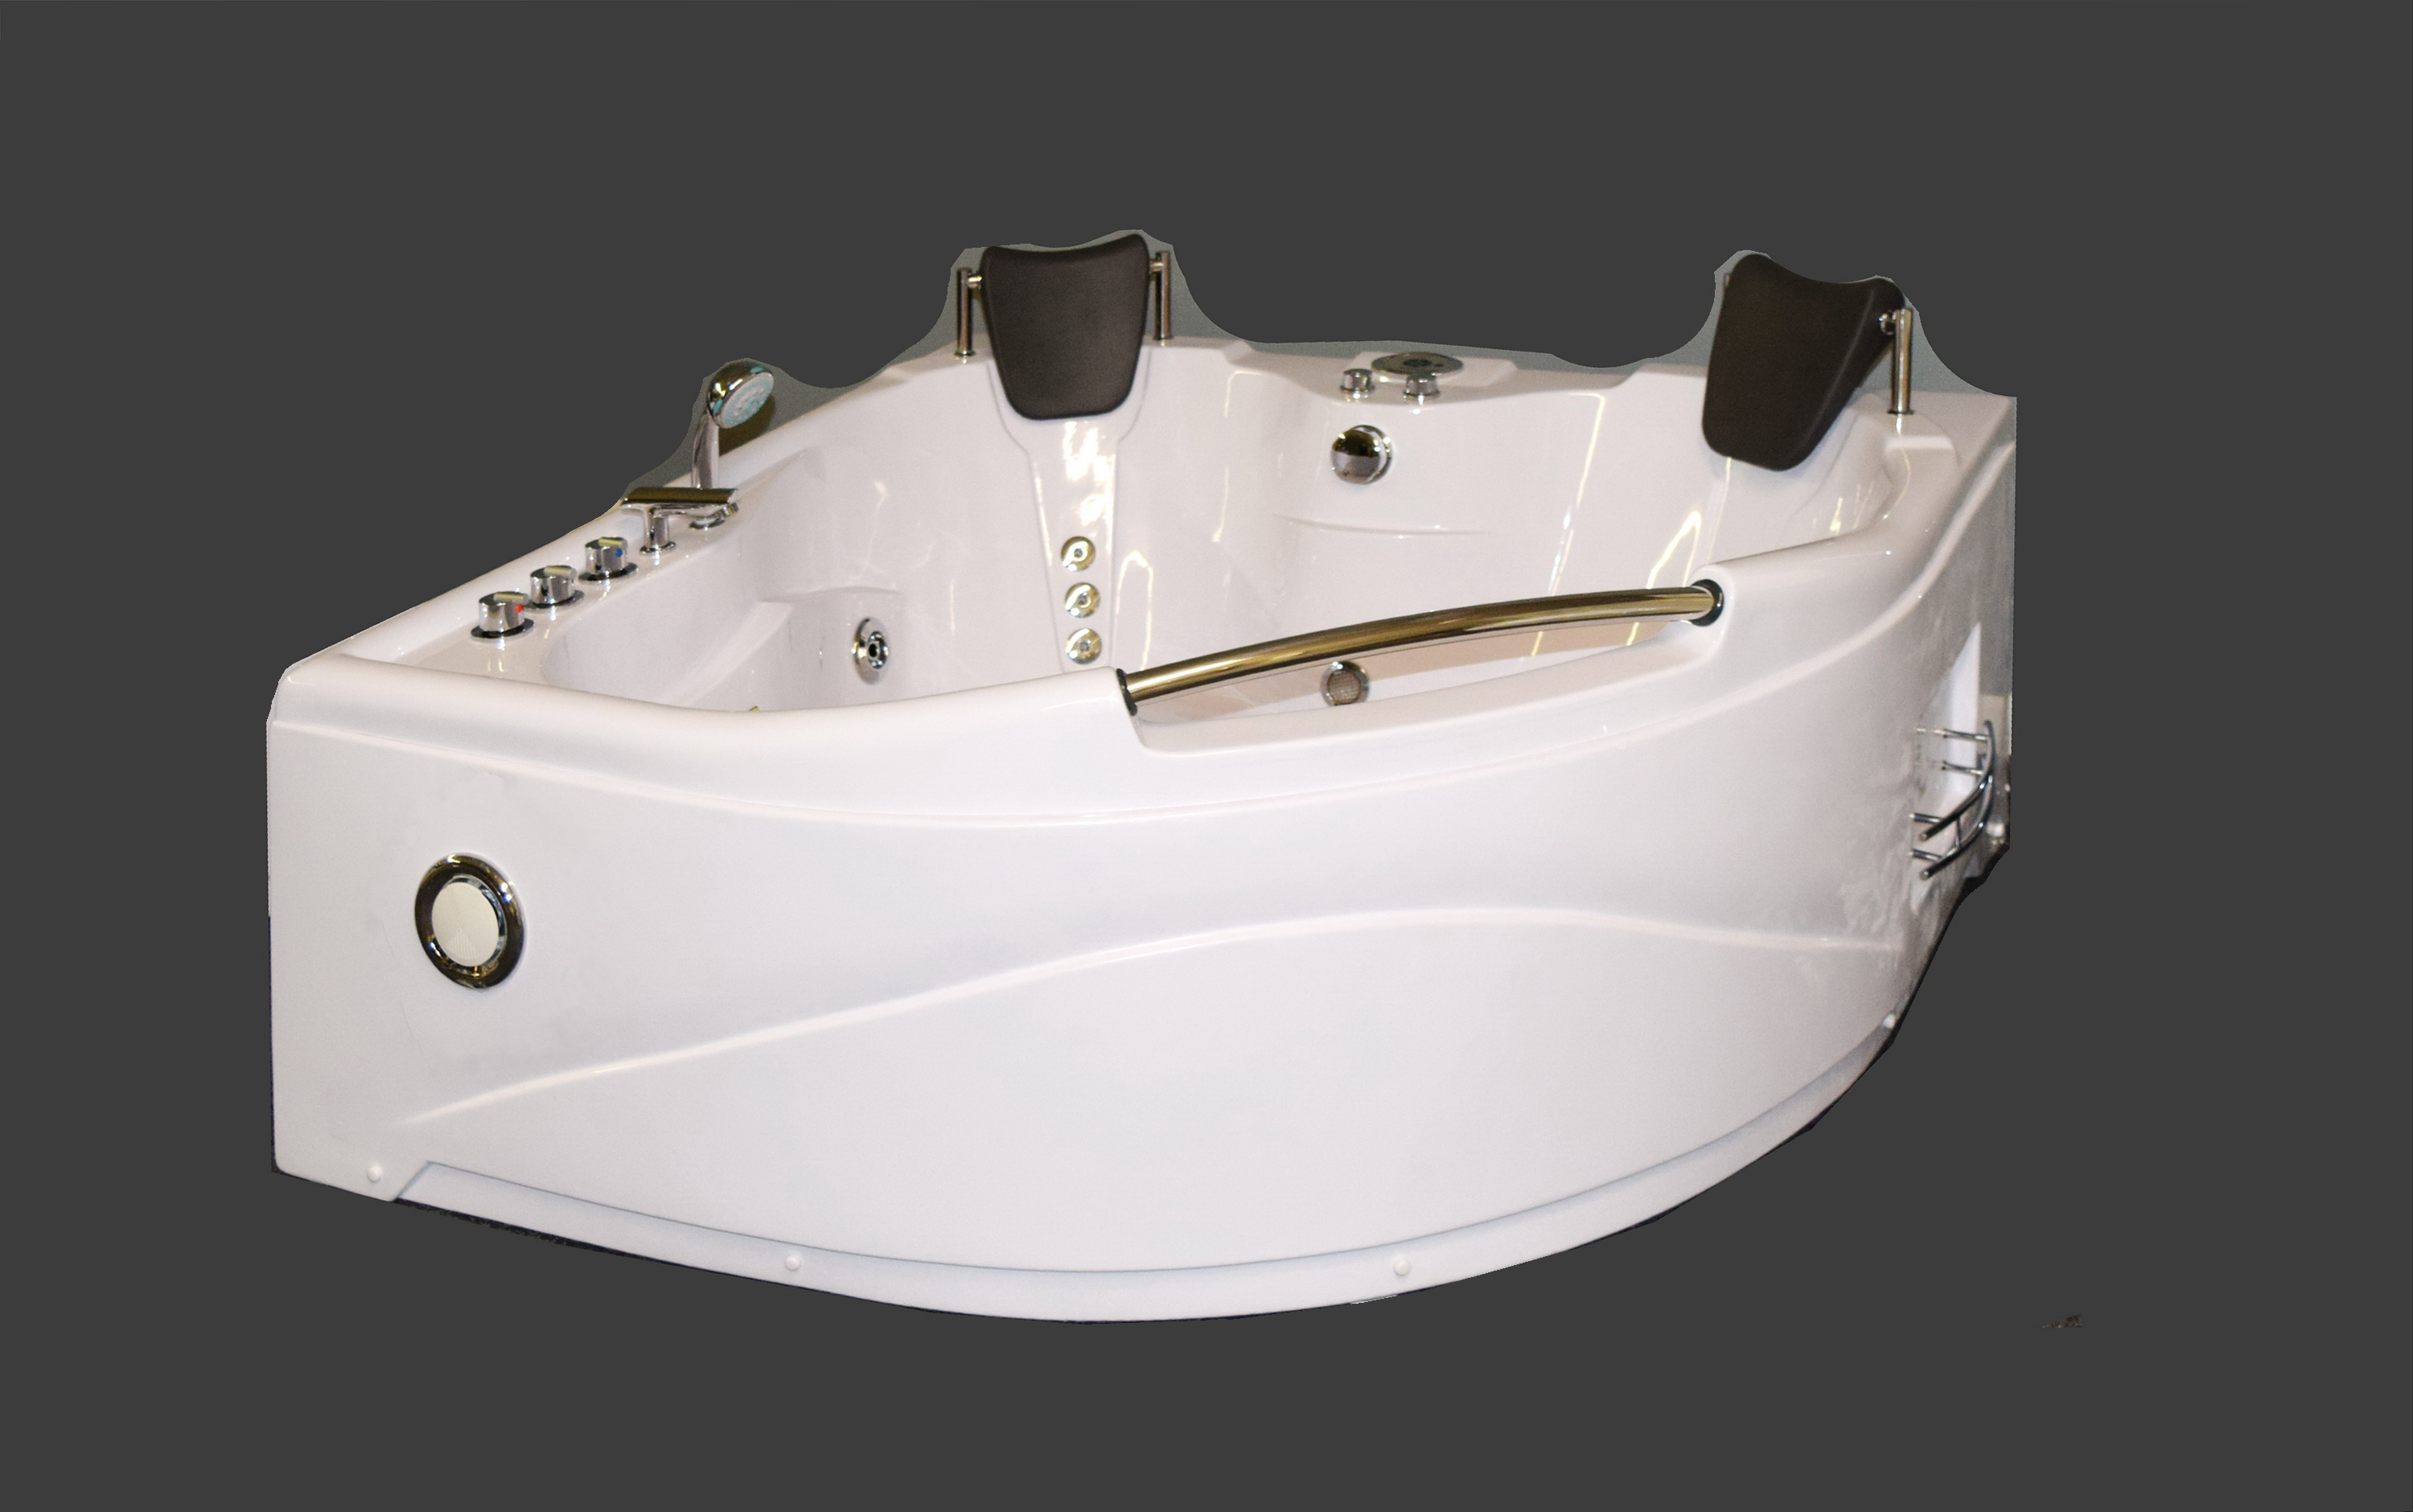 image bathtubs for whirlpool tub jetted person bathtub bath corner jacuzzi best